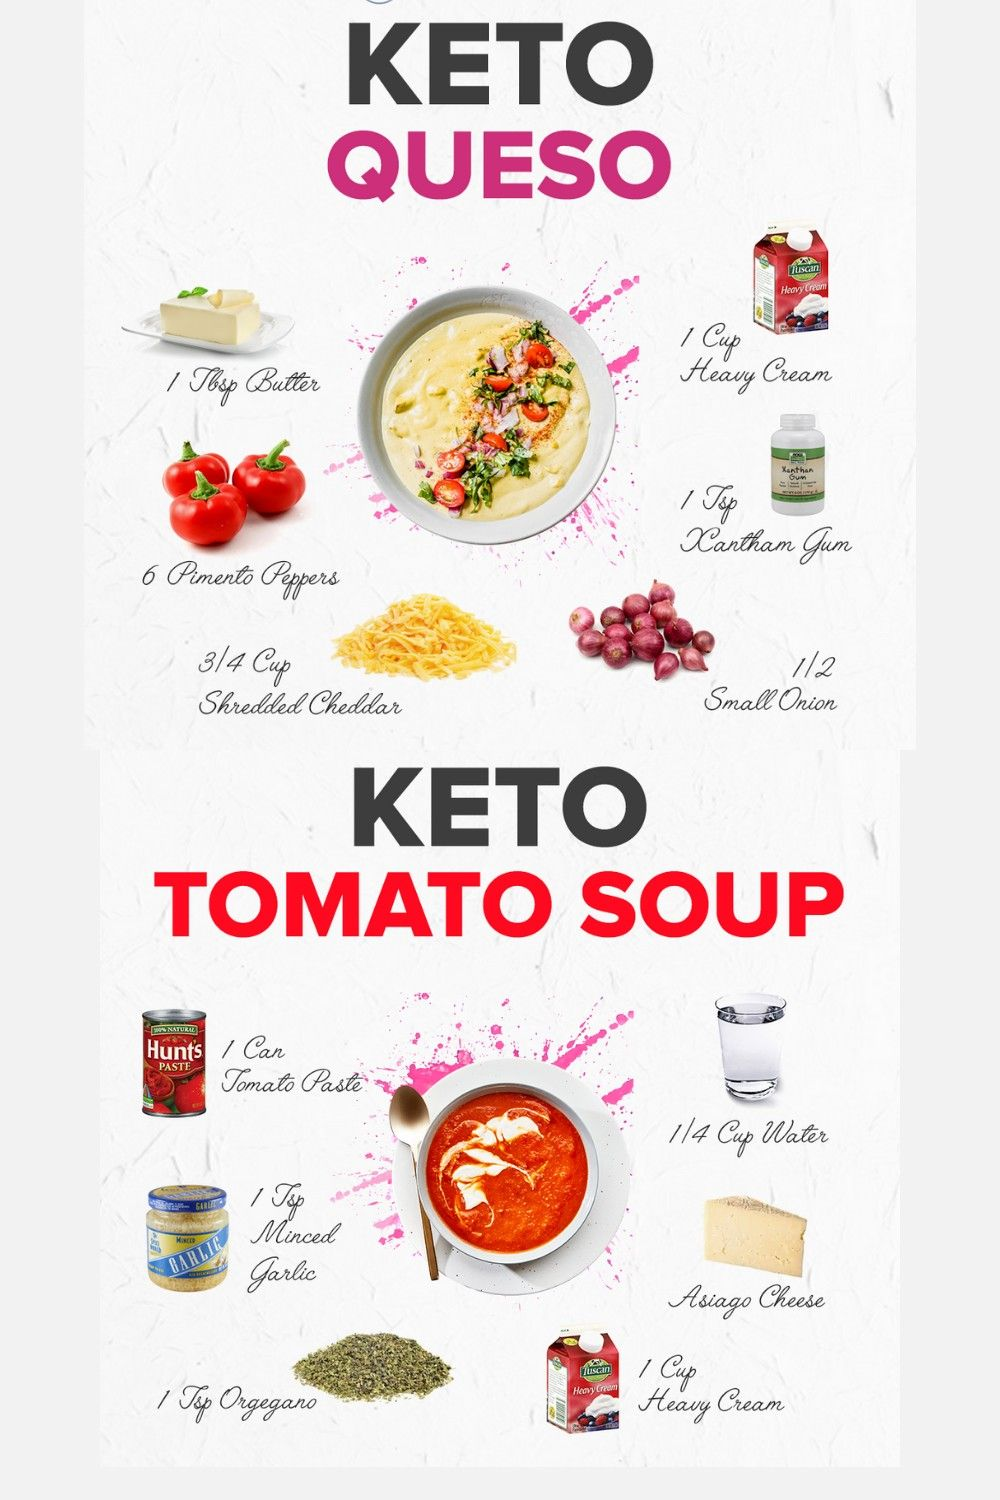 healthy eating lifestyle Best tasty healthy Foods tasty healthy to living a healthy life. Best tasty healthy Foods. Best keto diet food for beginners to weight #realfood #foodoftheday #healthybreakfast #recipes #cleaneats #wholefoods #healthyrecipes #cleanfood #dietfood #eatrealfood #spinach #eatwell #healthyeats #healthydiet #superfoods #healty #quinoa #sweetpotato #vegetarianfood #healtyfood #wholefood